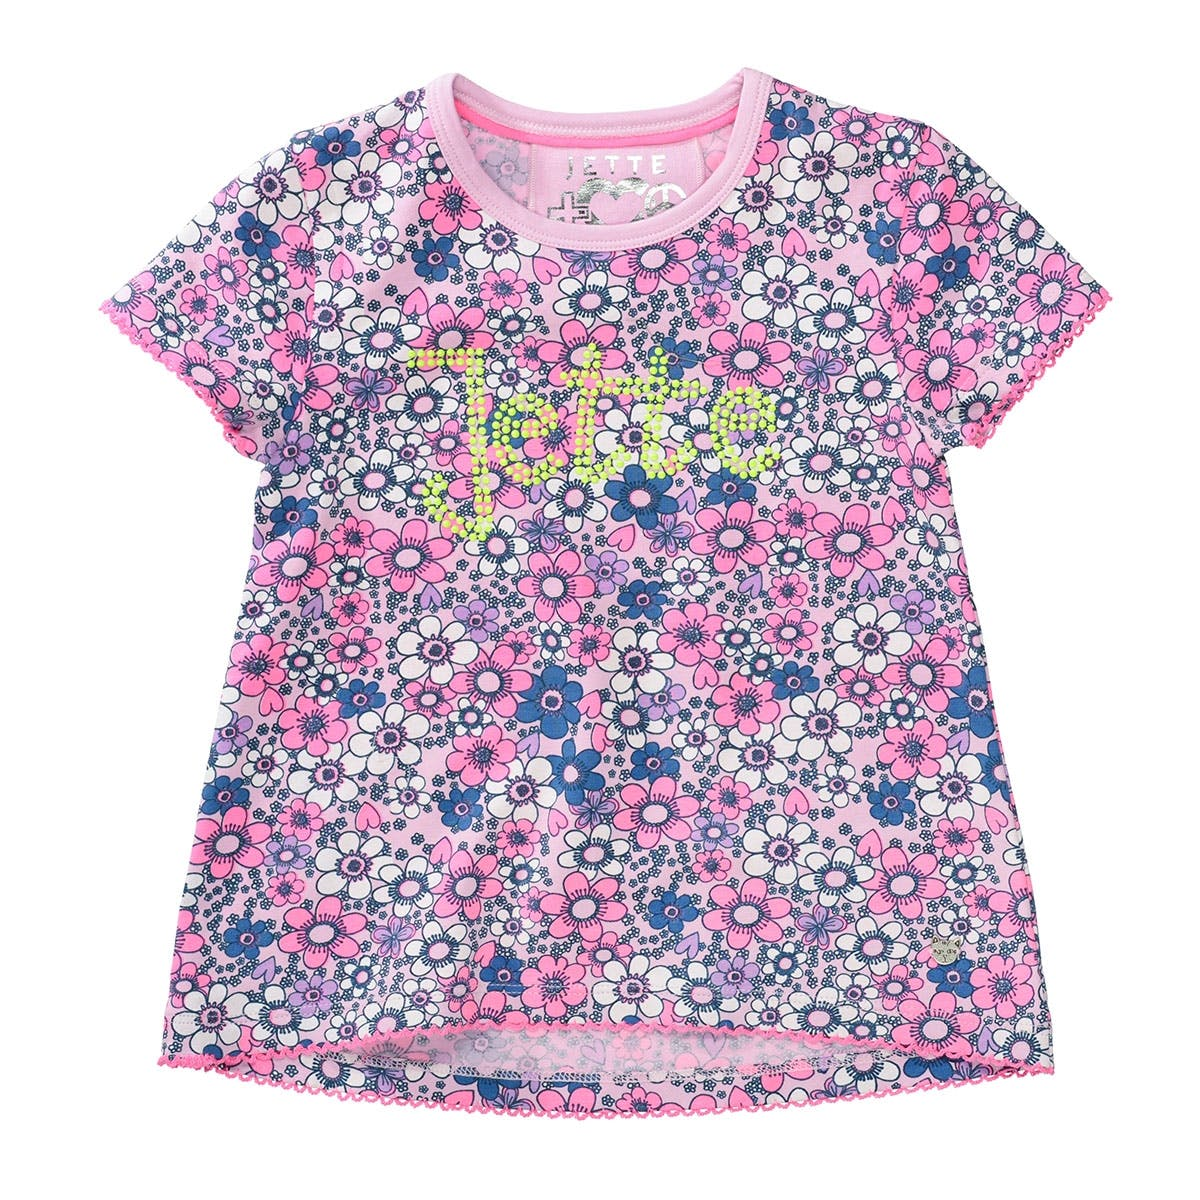 JETTE T-Shirt mit Blumenmuster - Lilac Rosy